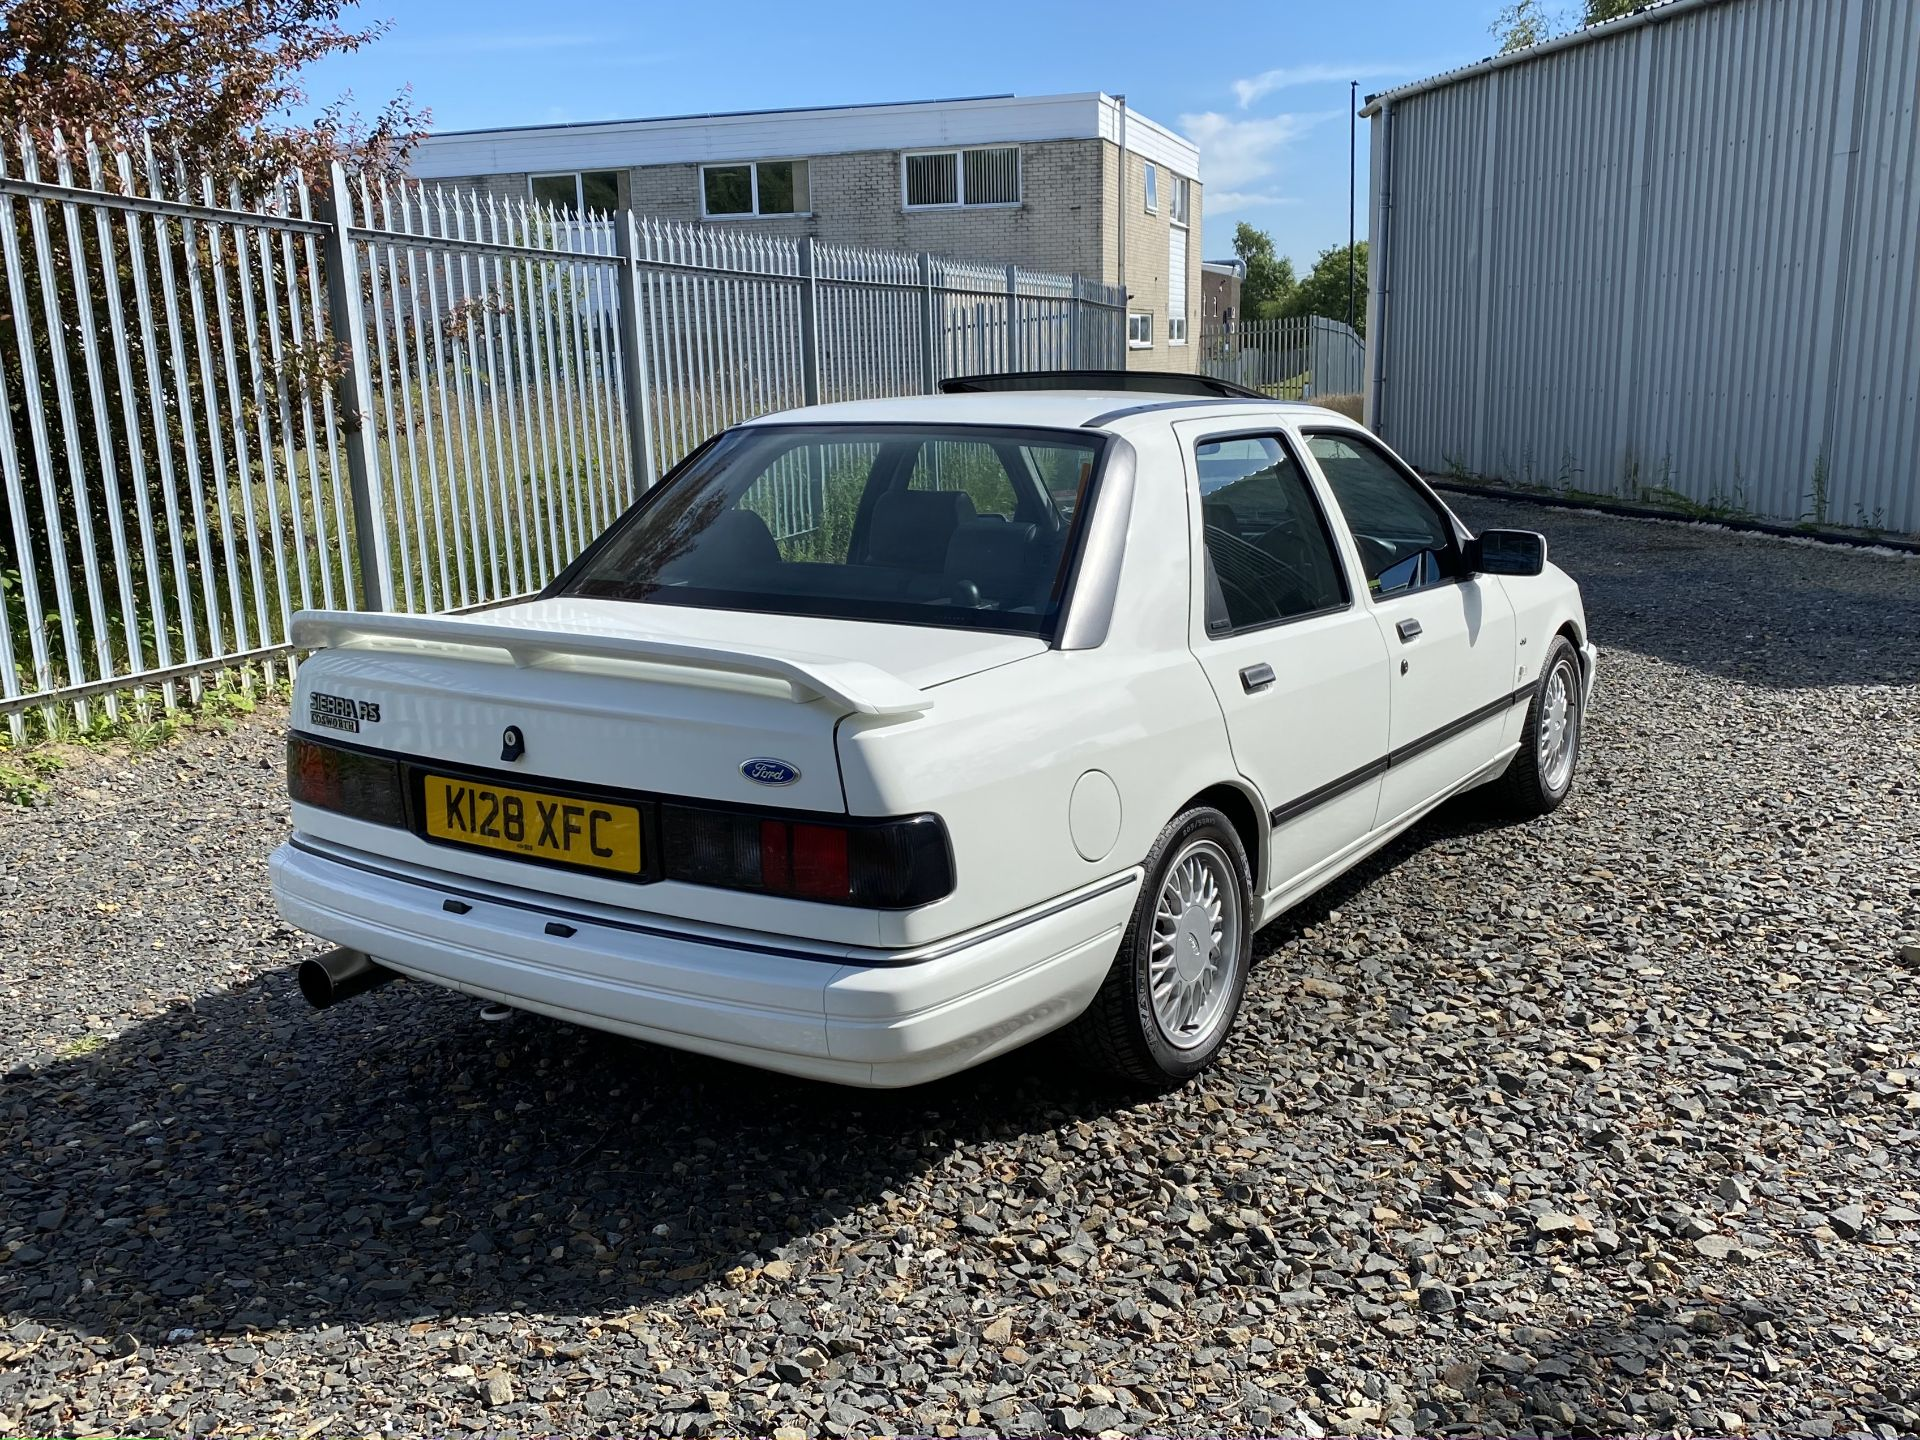 Ford Sierra Sapphire Cosworth 4x4 - Image 7 of 55